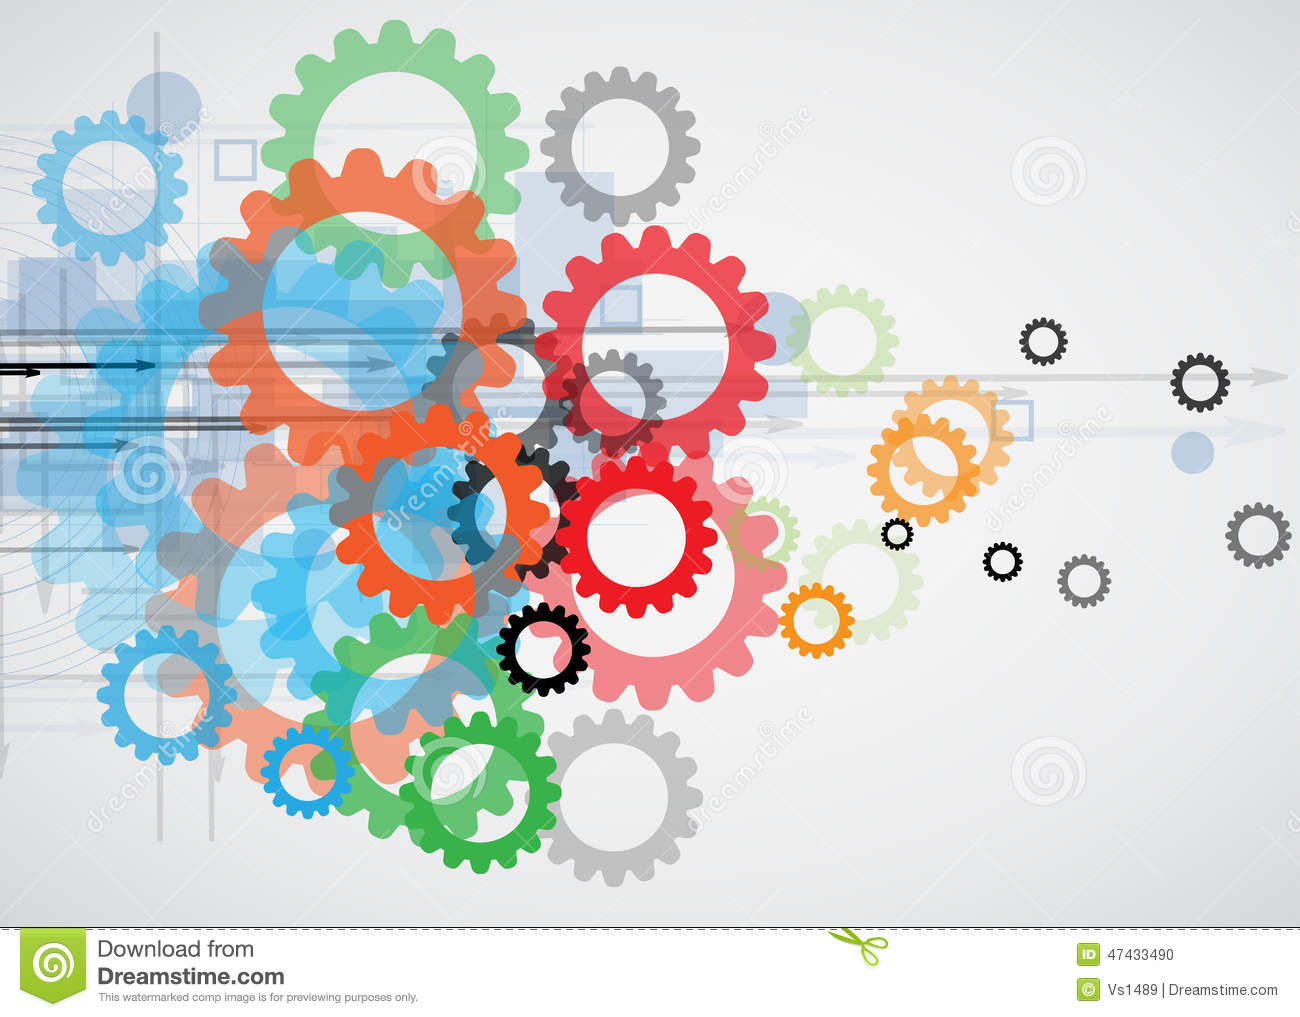 Integration And Innovation Technology Stock Vector - Image: 47433490